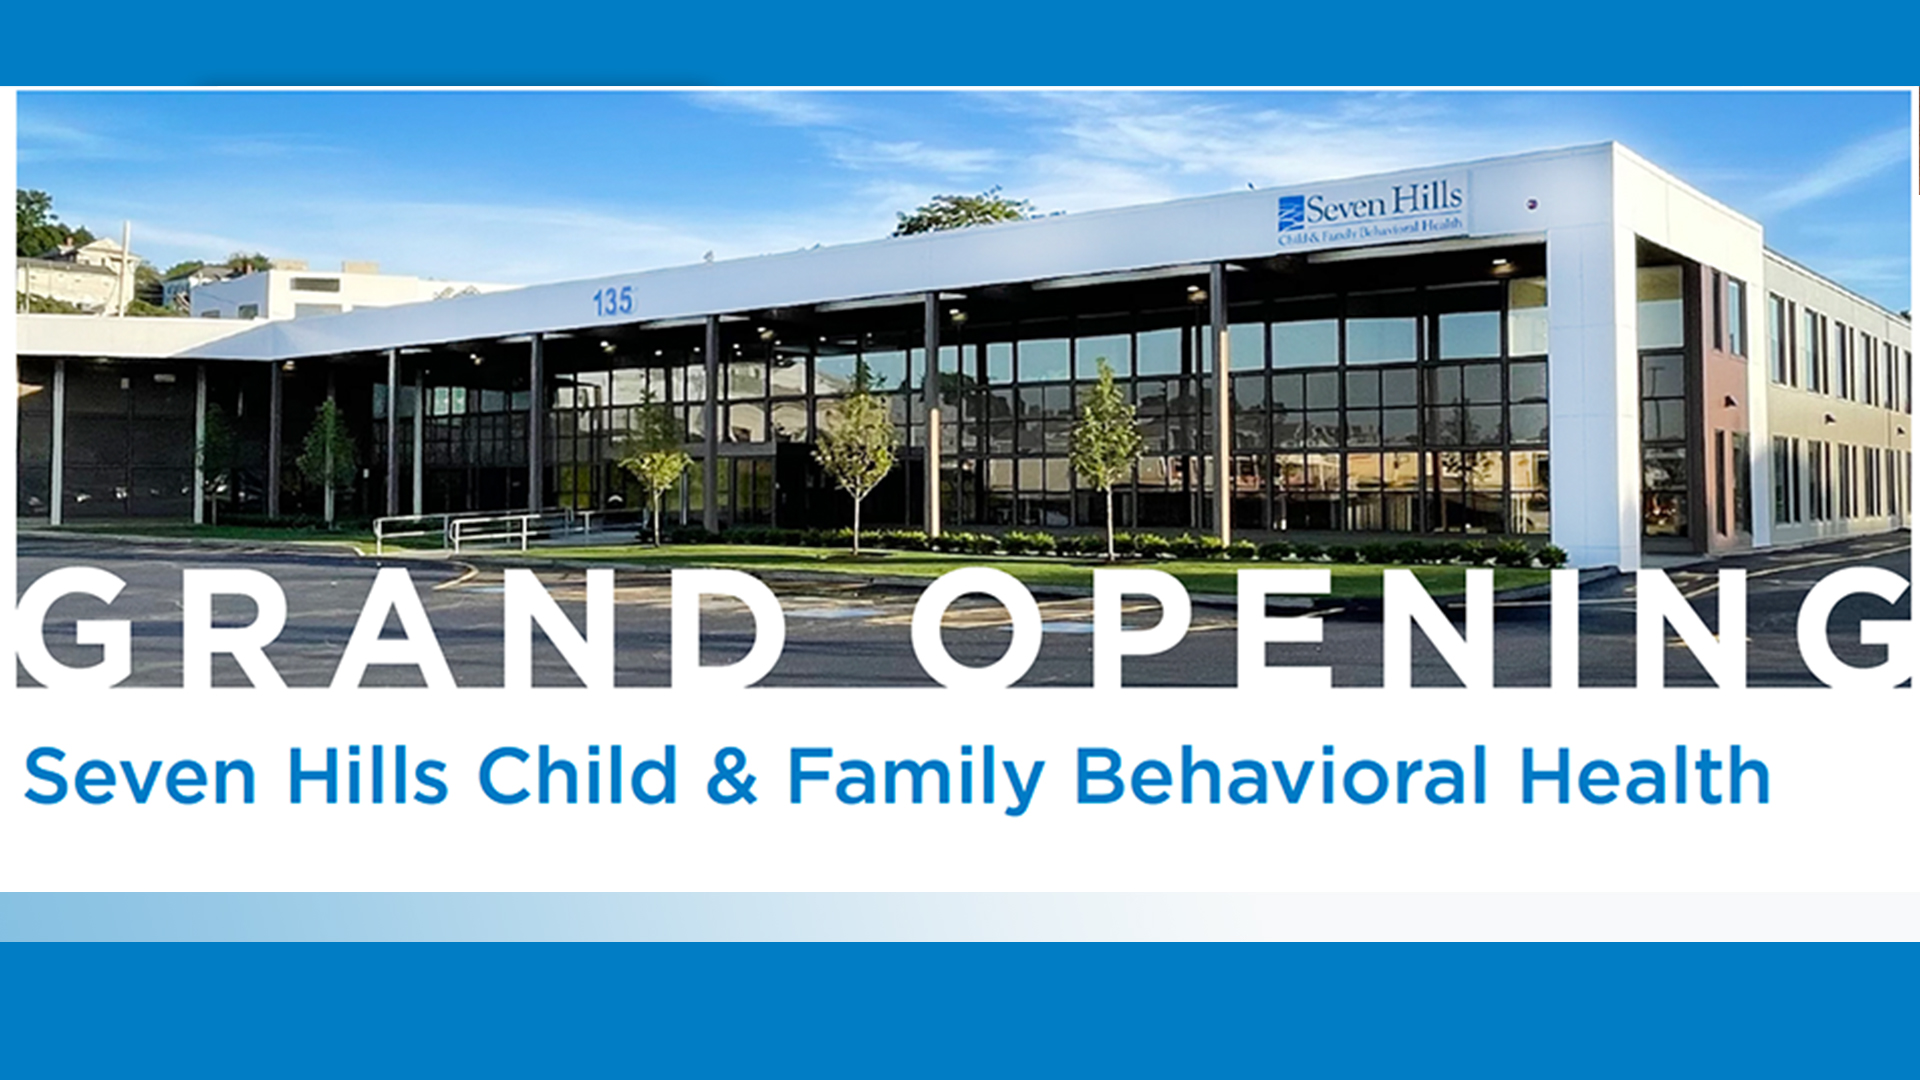 Grand Opening for Child and Family Behavioral Health Center